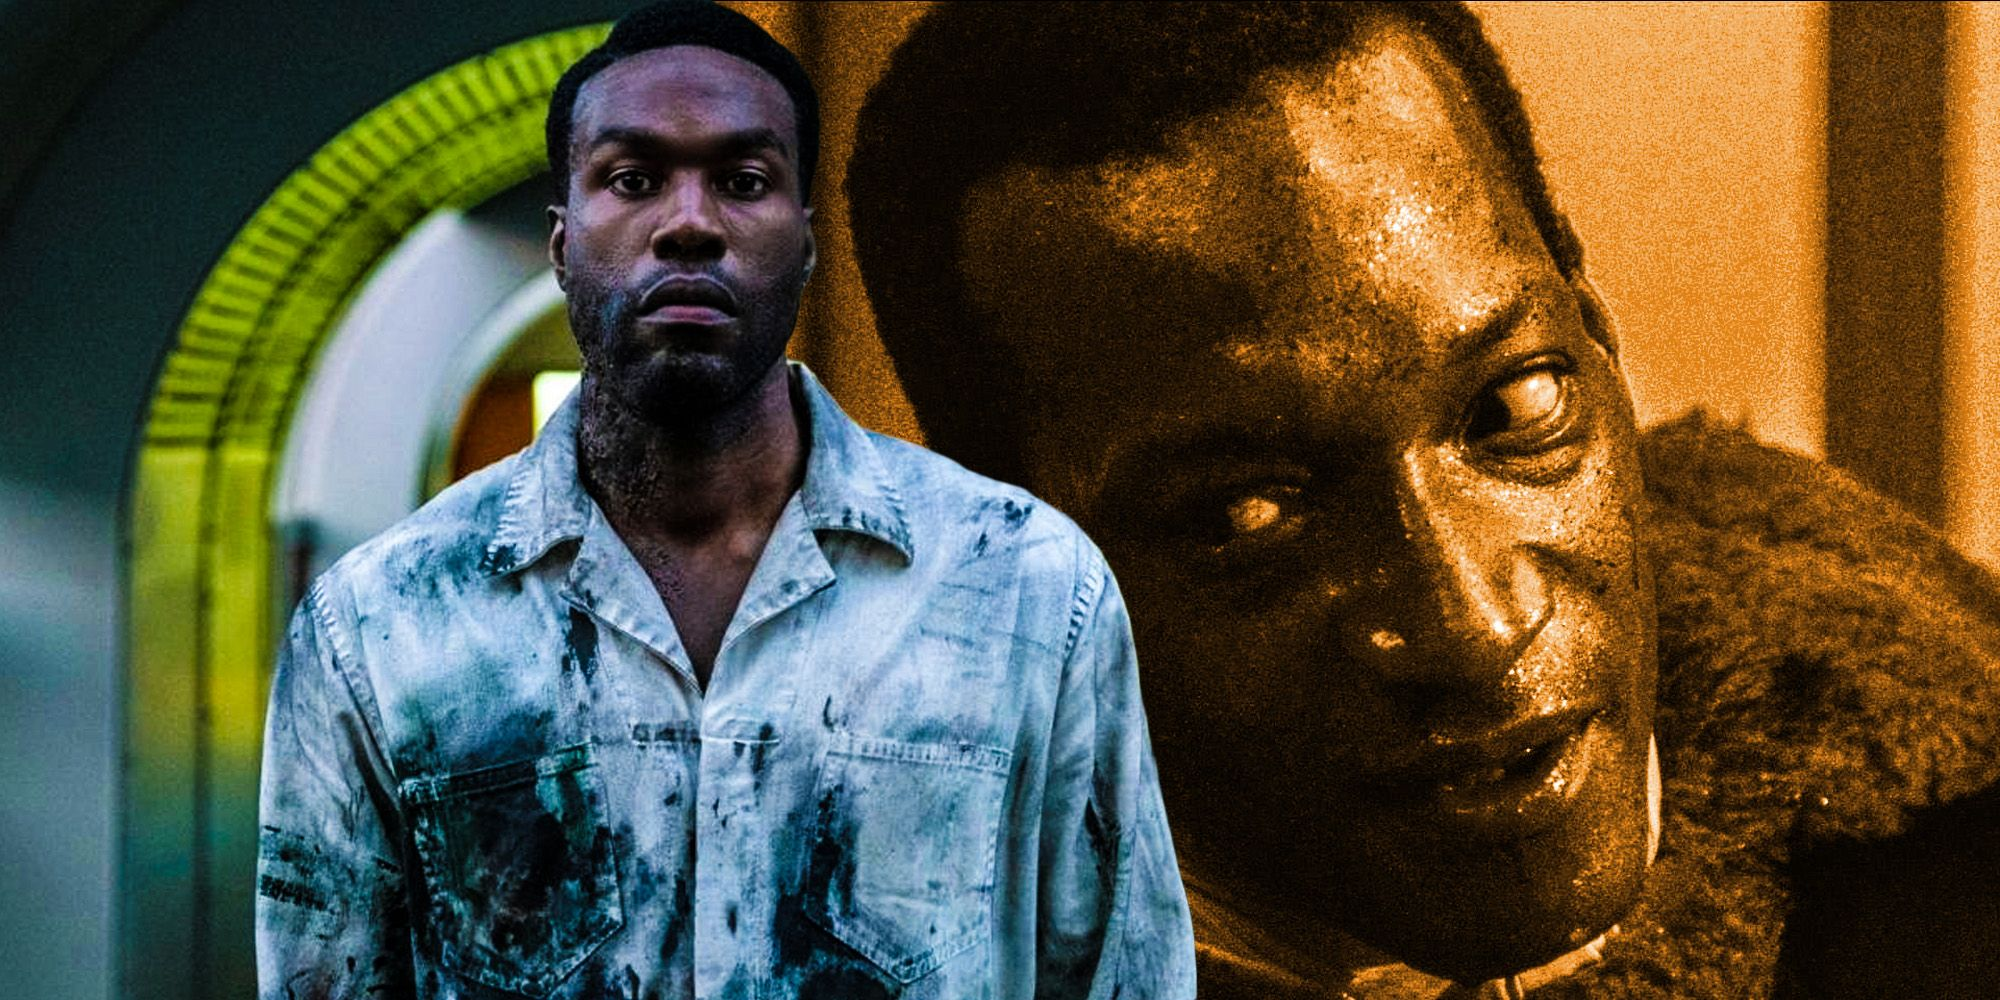 How Is Candyman 2021 Connected To The Original Movies?